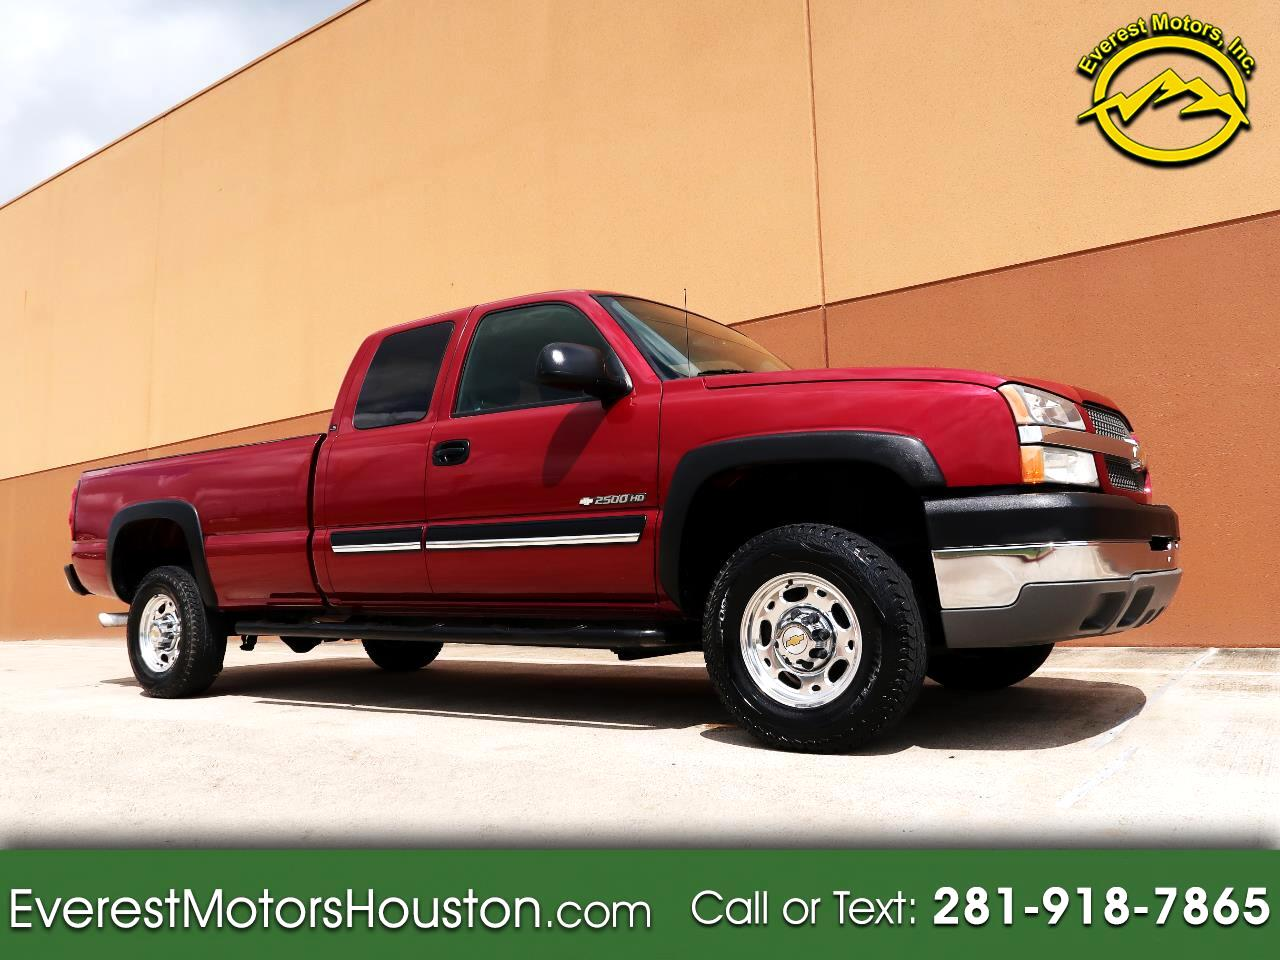 2004 Chevrolet Silverado 2500HD SL EXT.CAB LONG BED GASOLINE 2WD